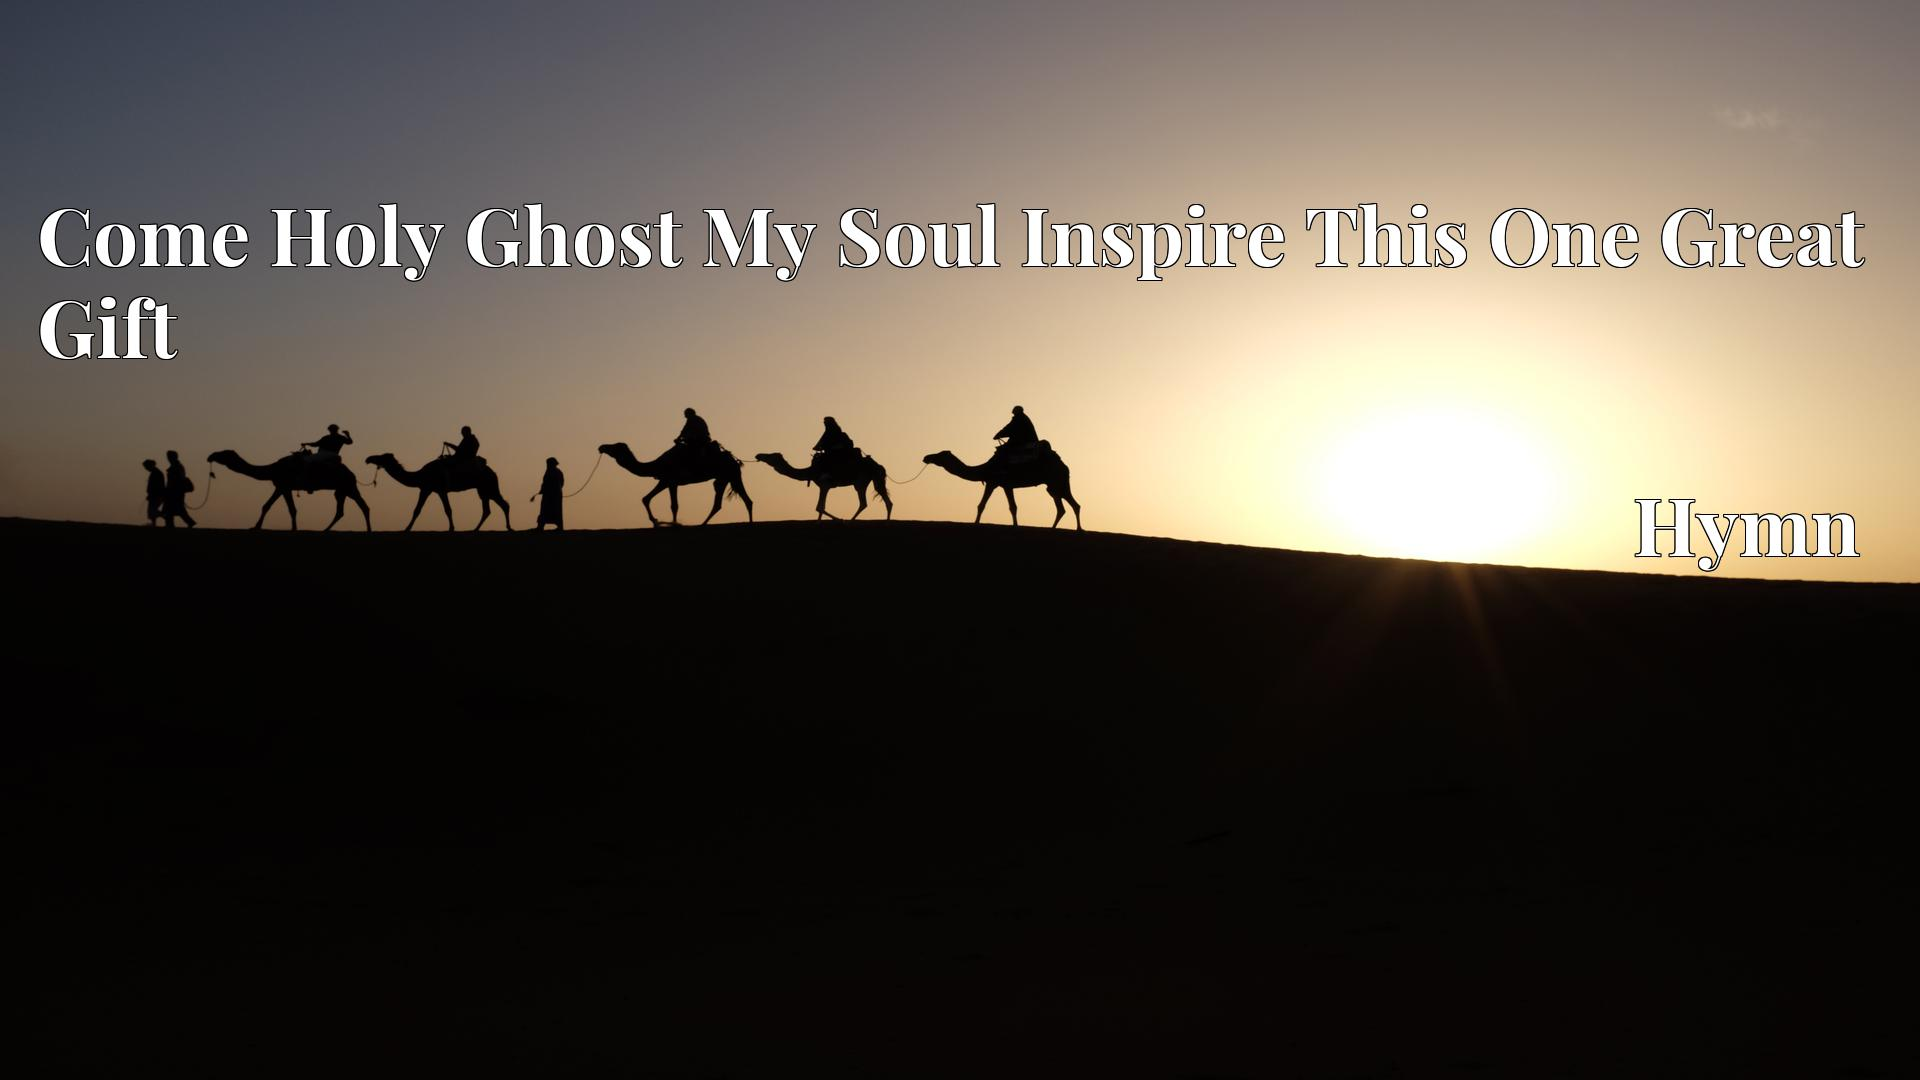 Come Holy Ghost My Soul Inspire This One Great Gift - Hymn